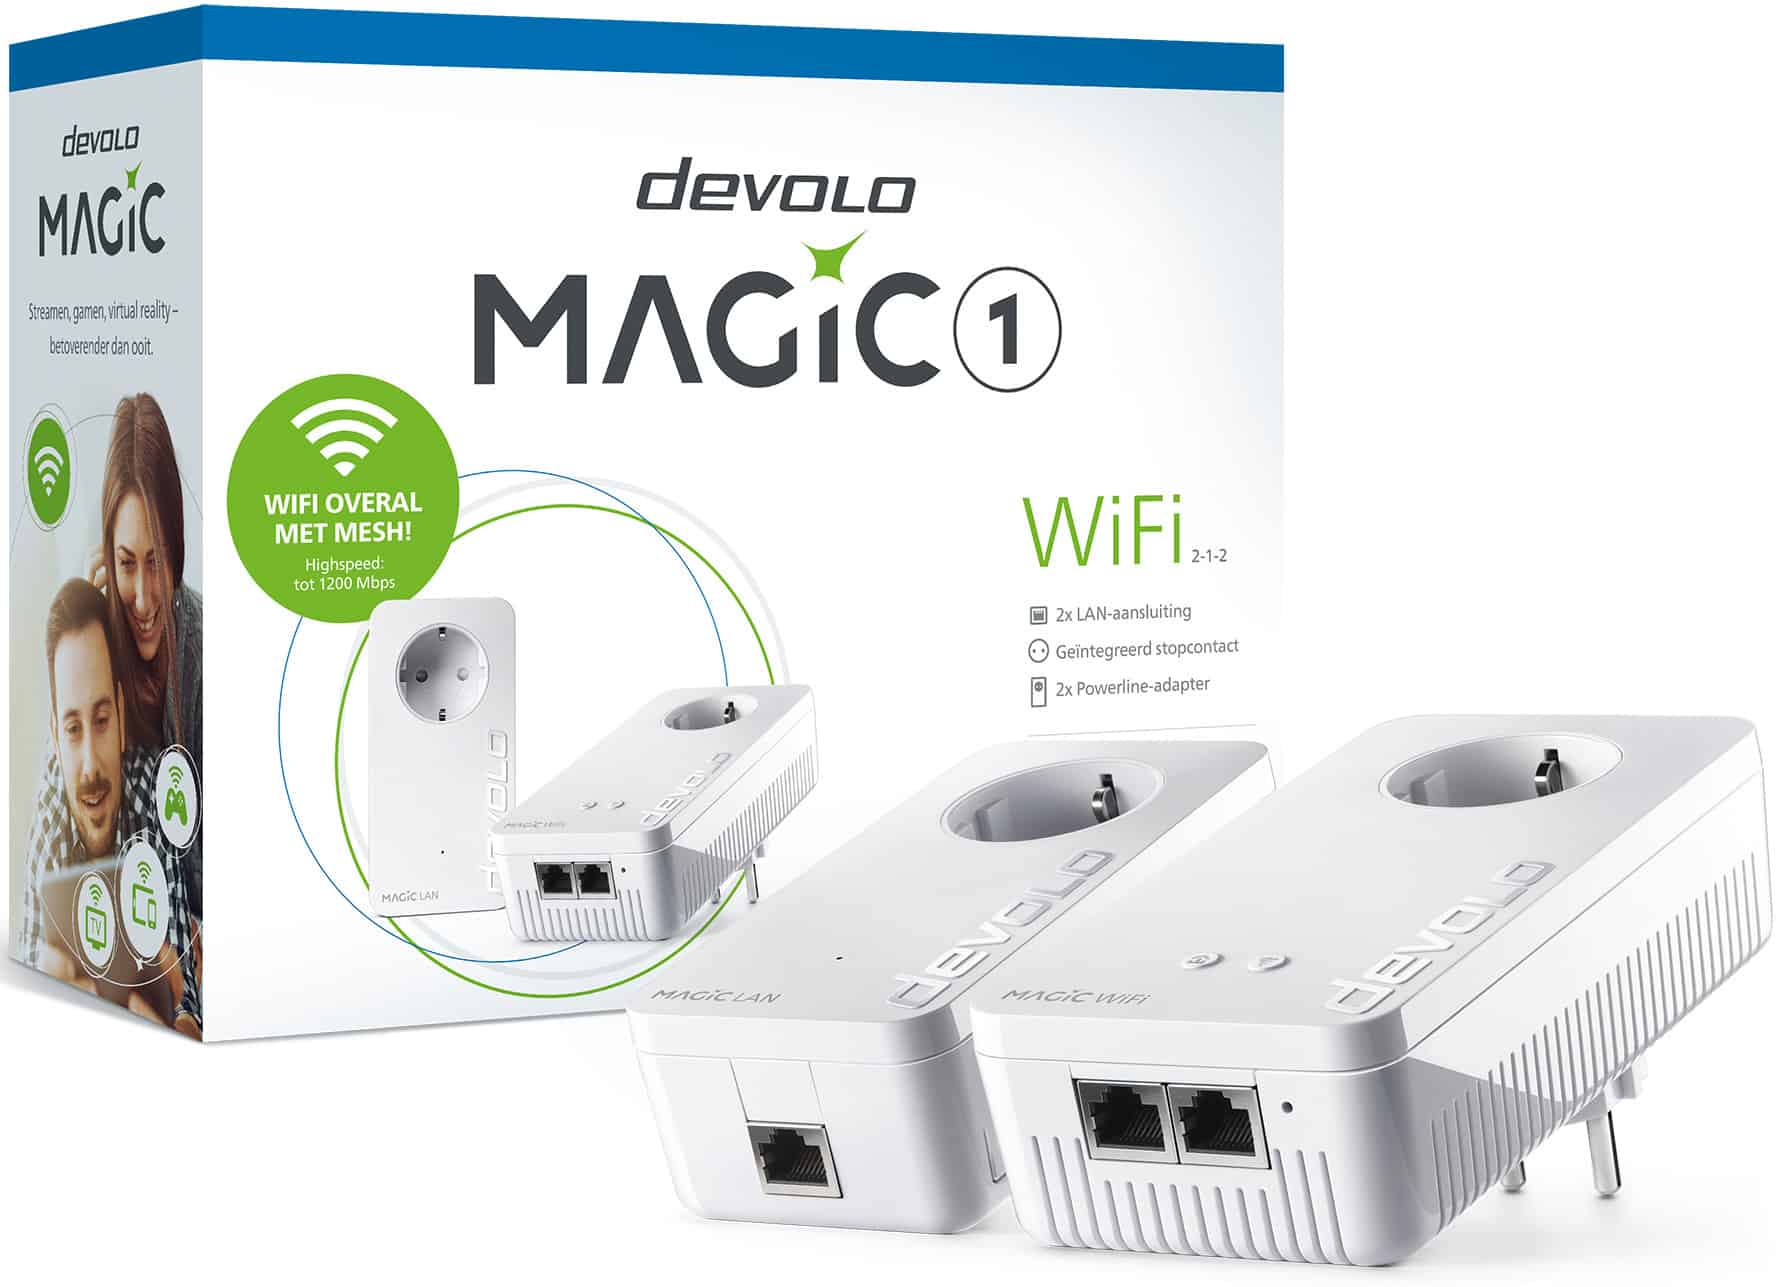 devolo magic 1